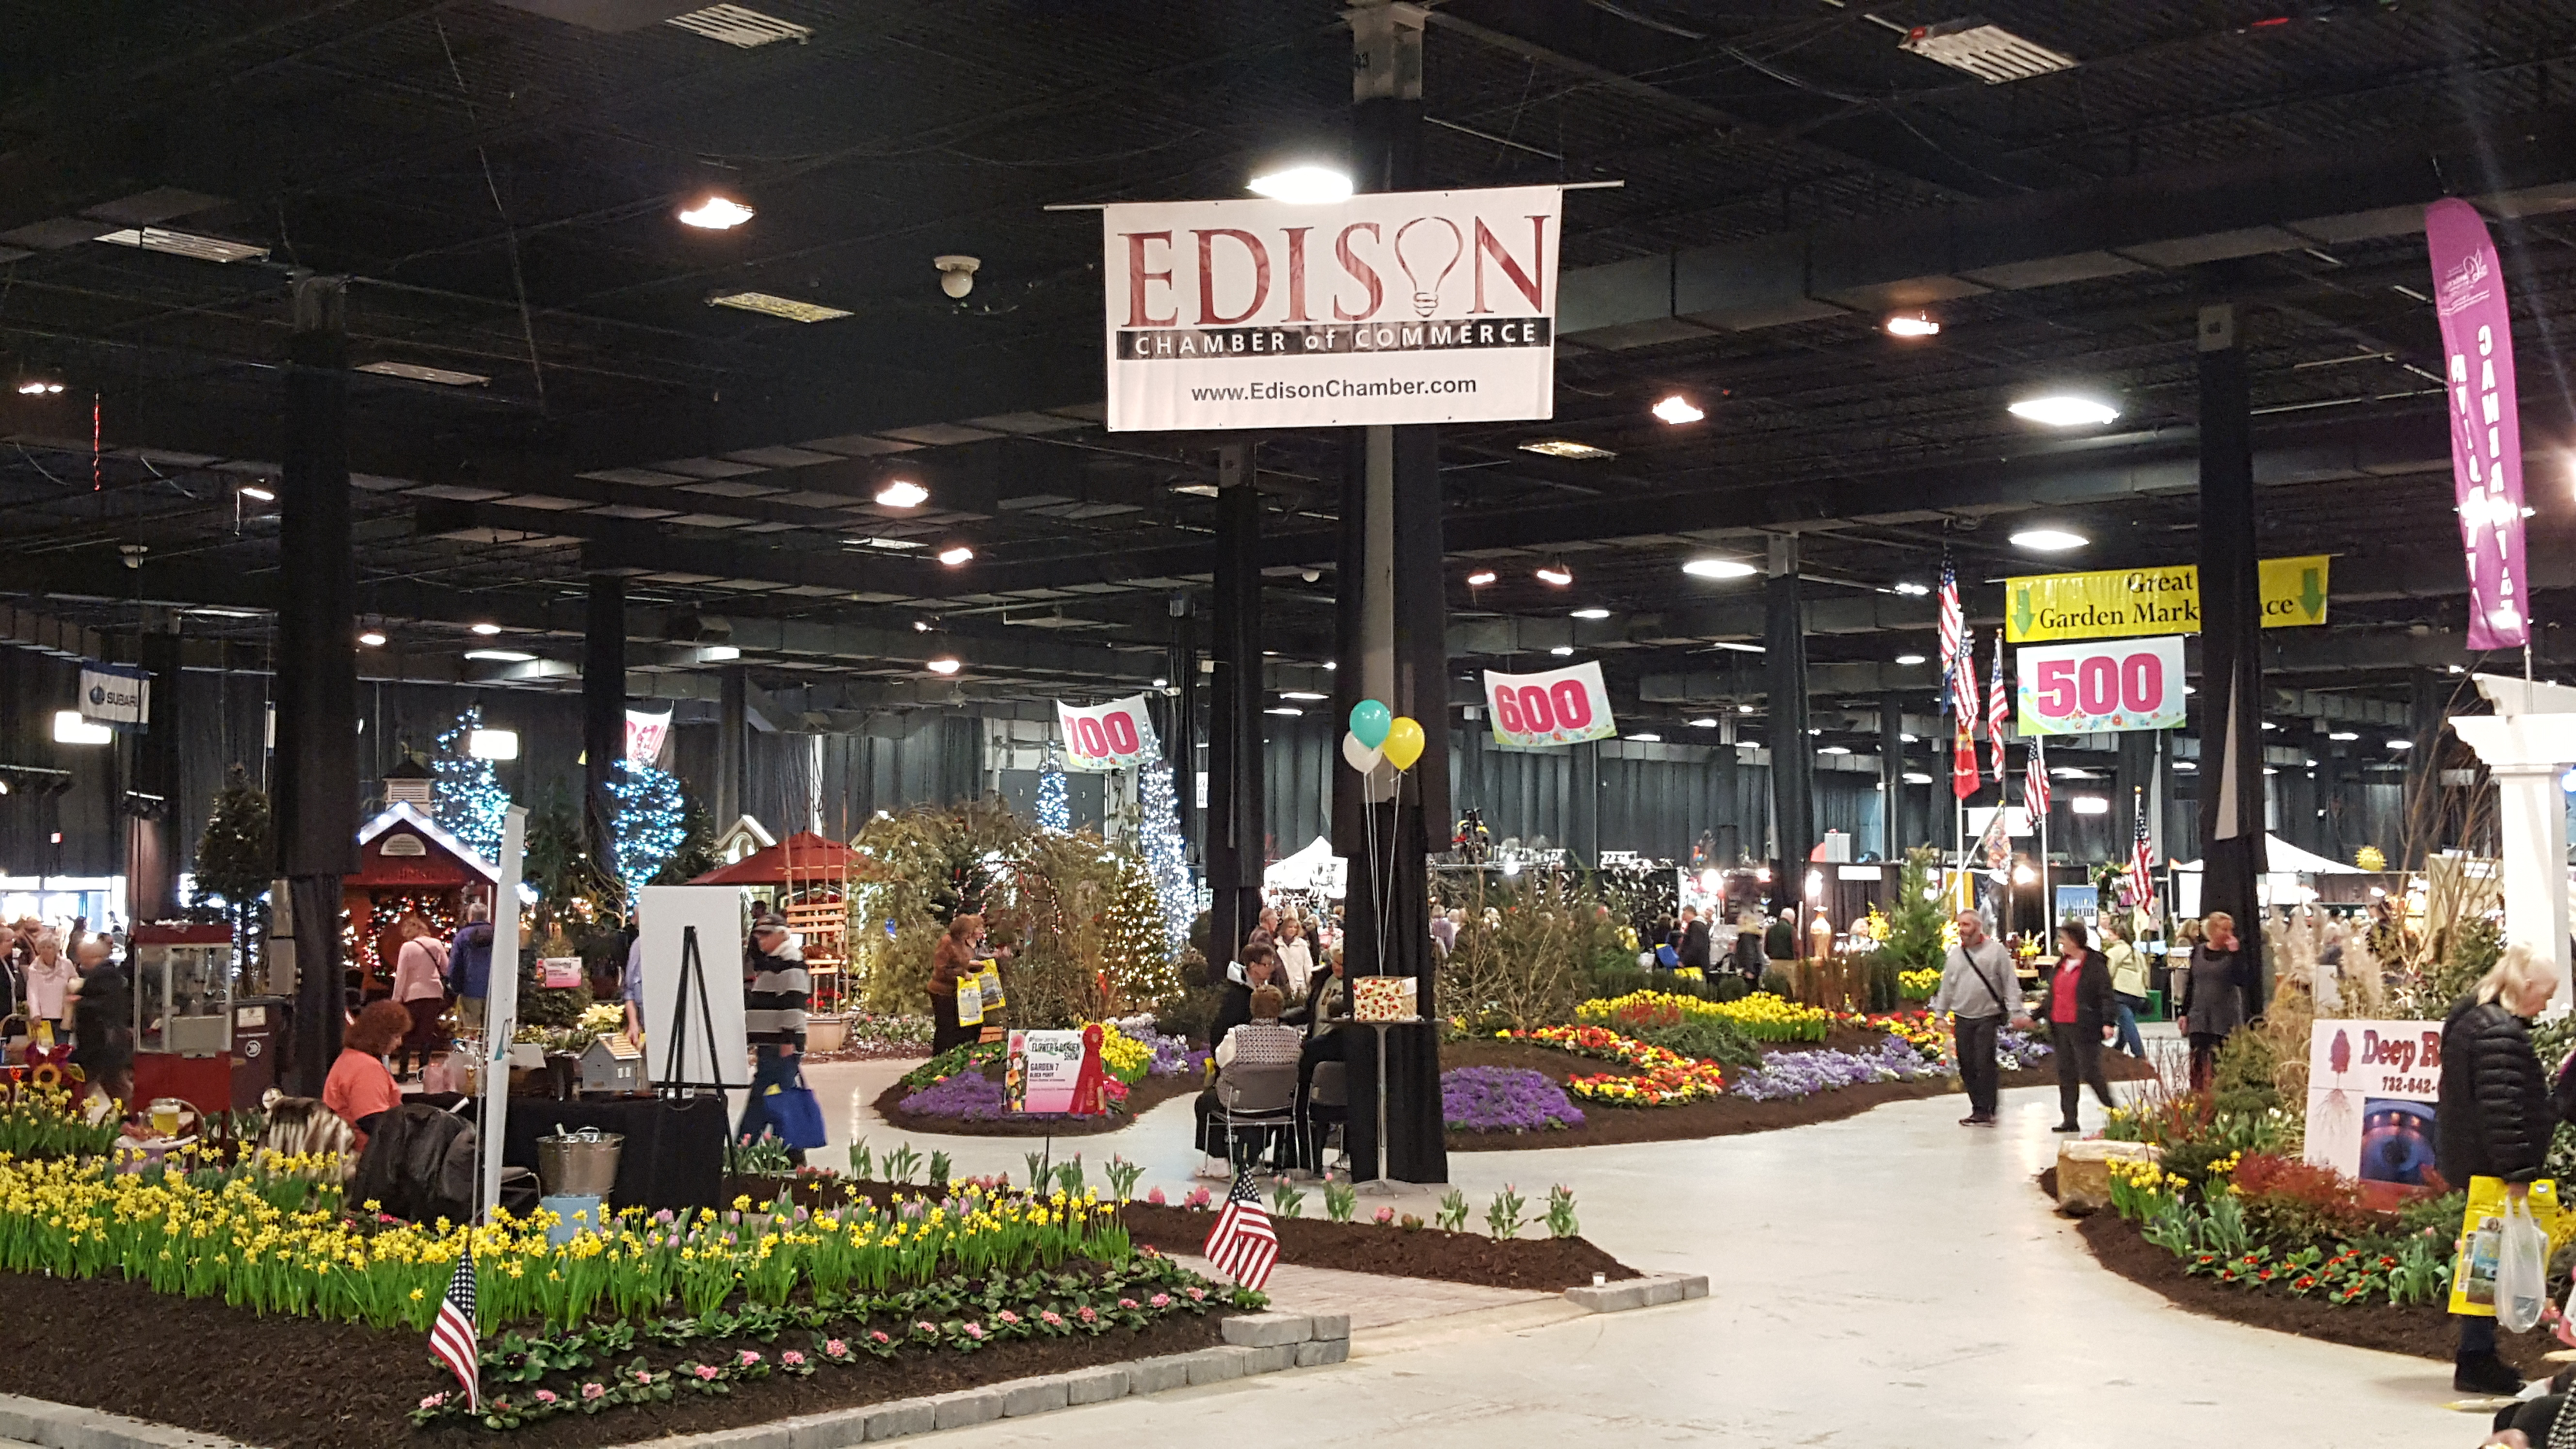 Edison Chamber Takes 2nd Place At The NJ Flower Show